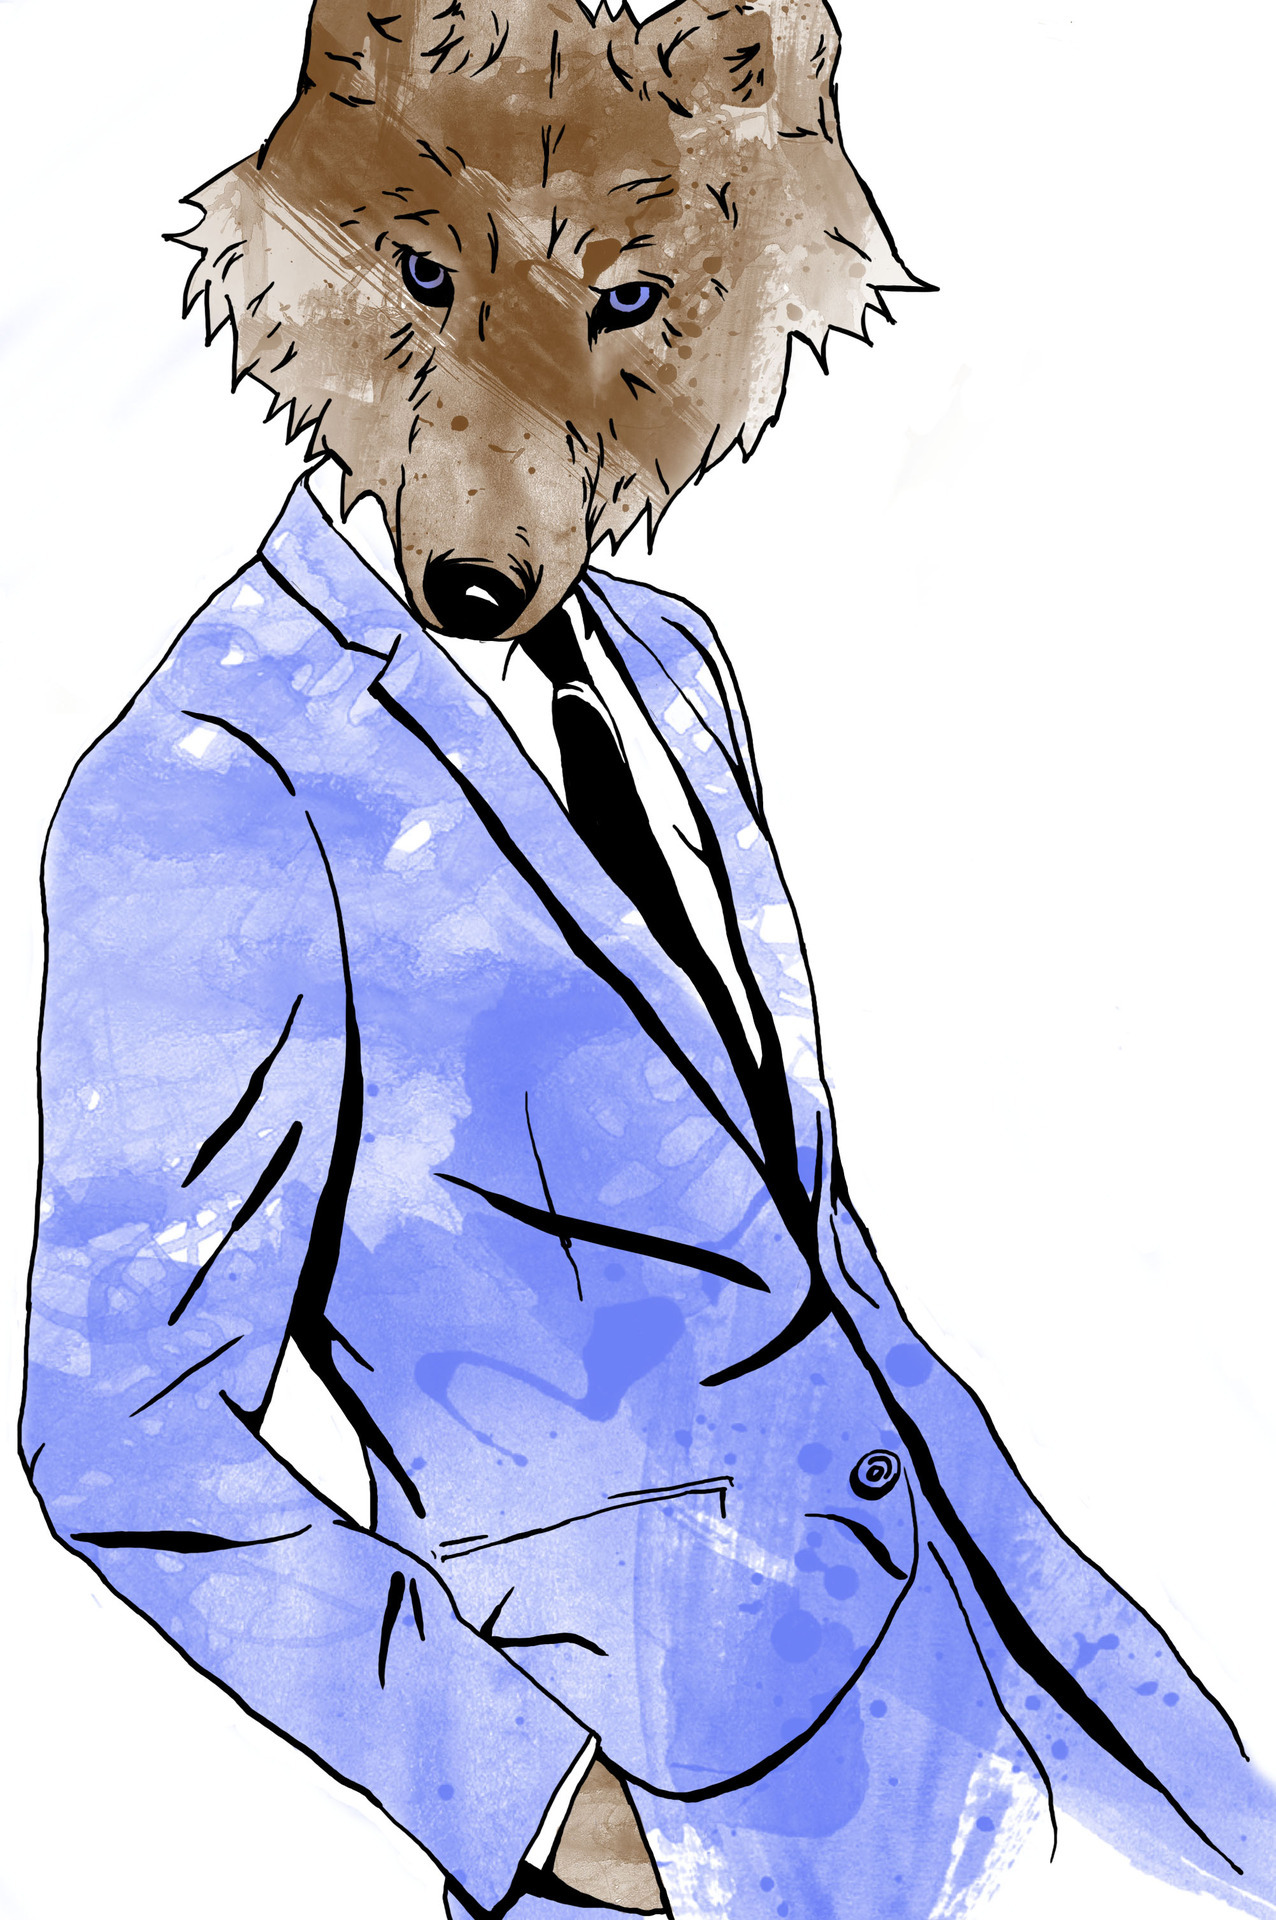 A wolf in Calvin Klein's clothing